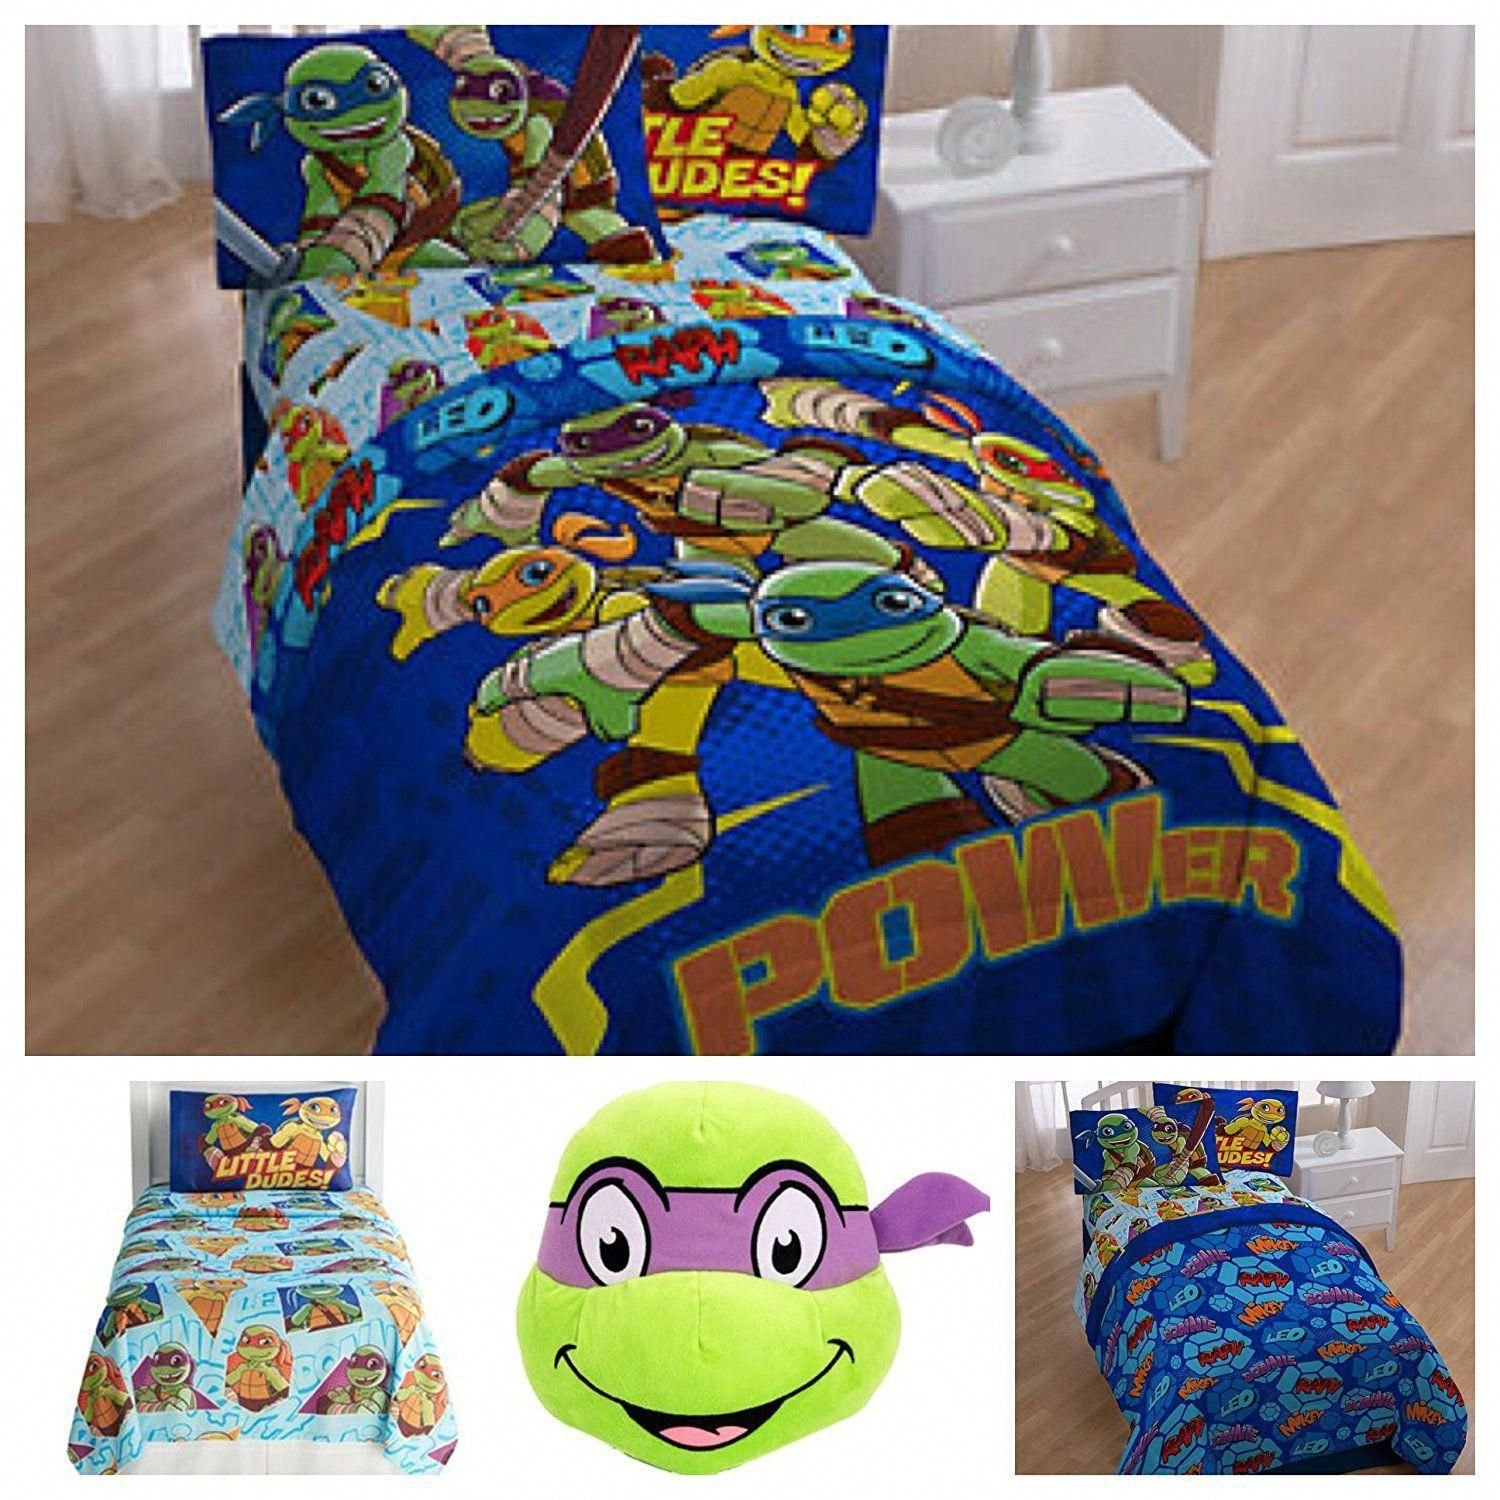 Teenage Mutant Ninja Turtles Tmnt Bedding Comforter Set With Sheets And Plush Pillow Toy Twin Price 89 30 Fre Tmnt Bedding Comforter Sets Plush Pillows